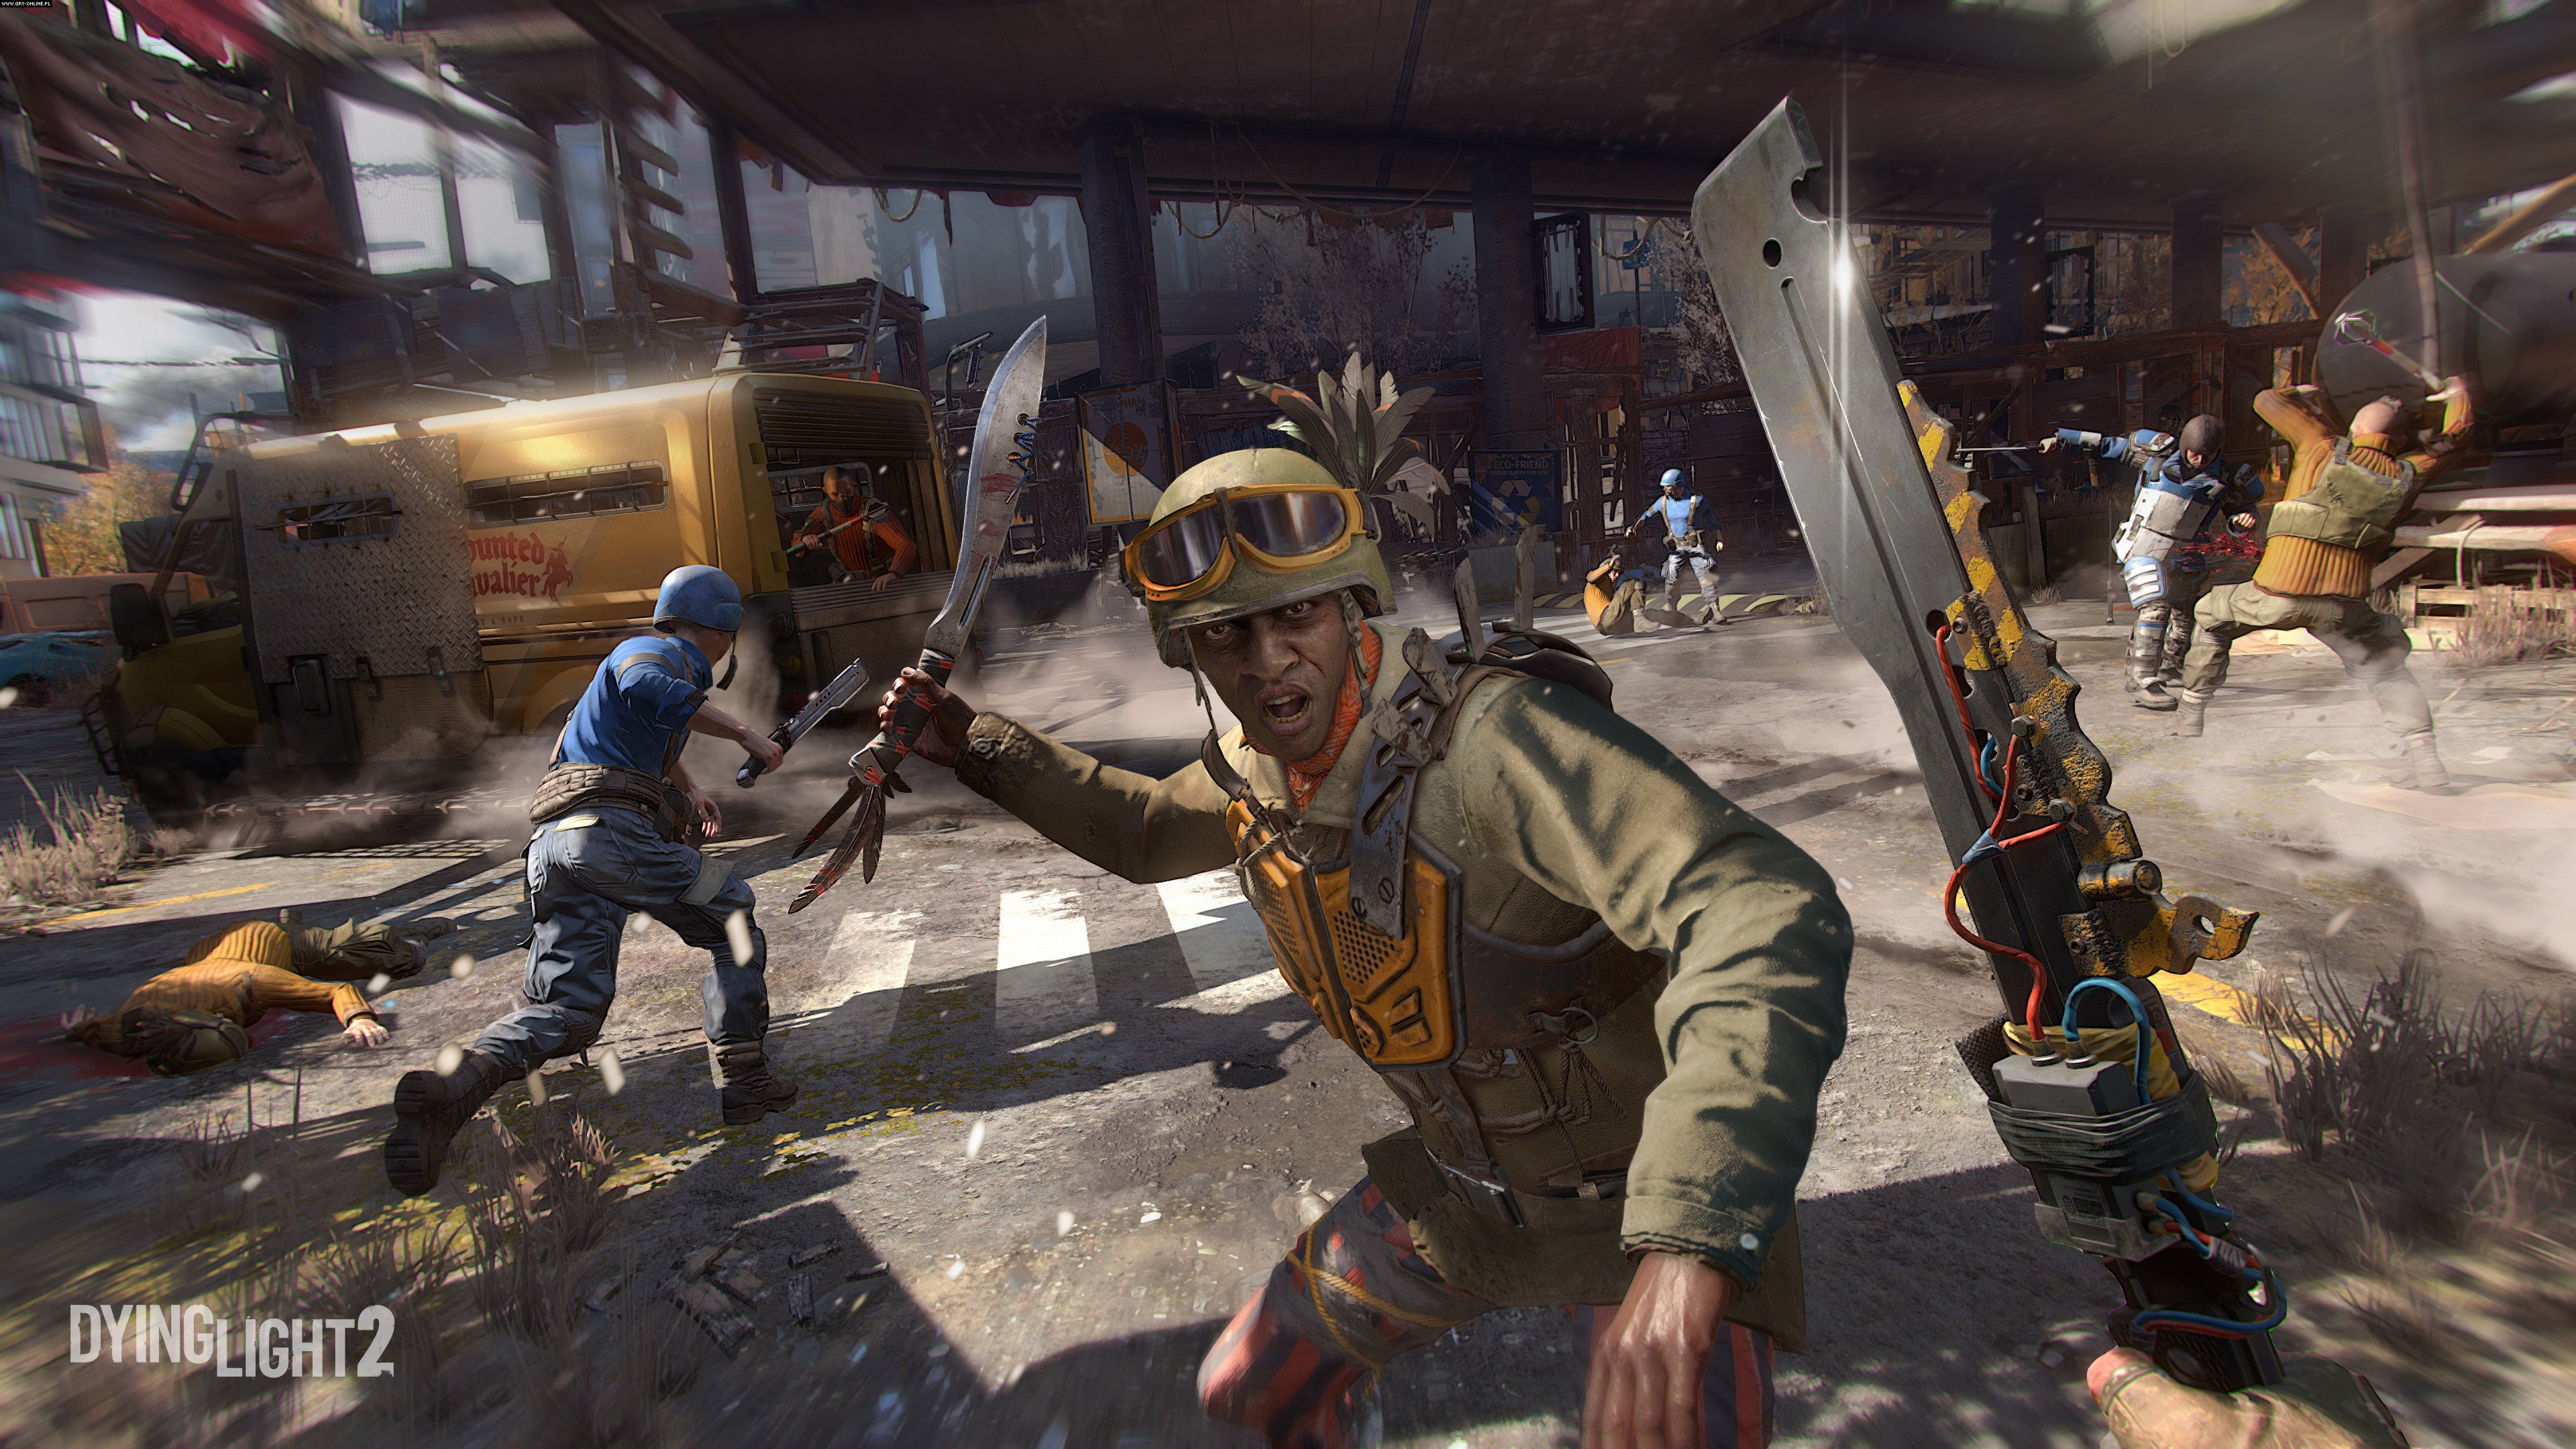 Dying Light 2 PC, PS4, XONE Games Image 4/21, Techland